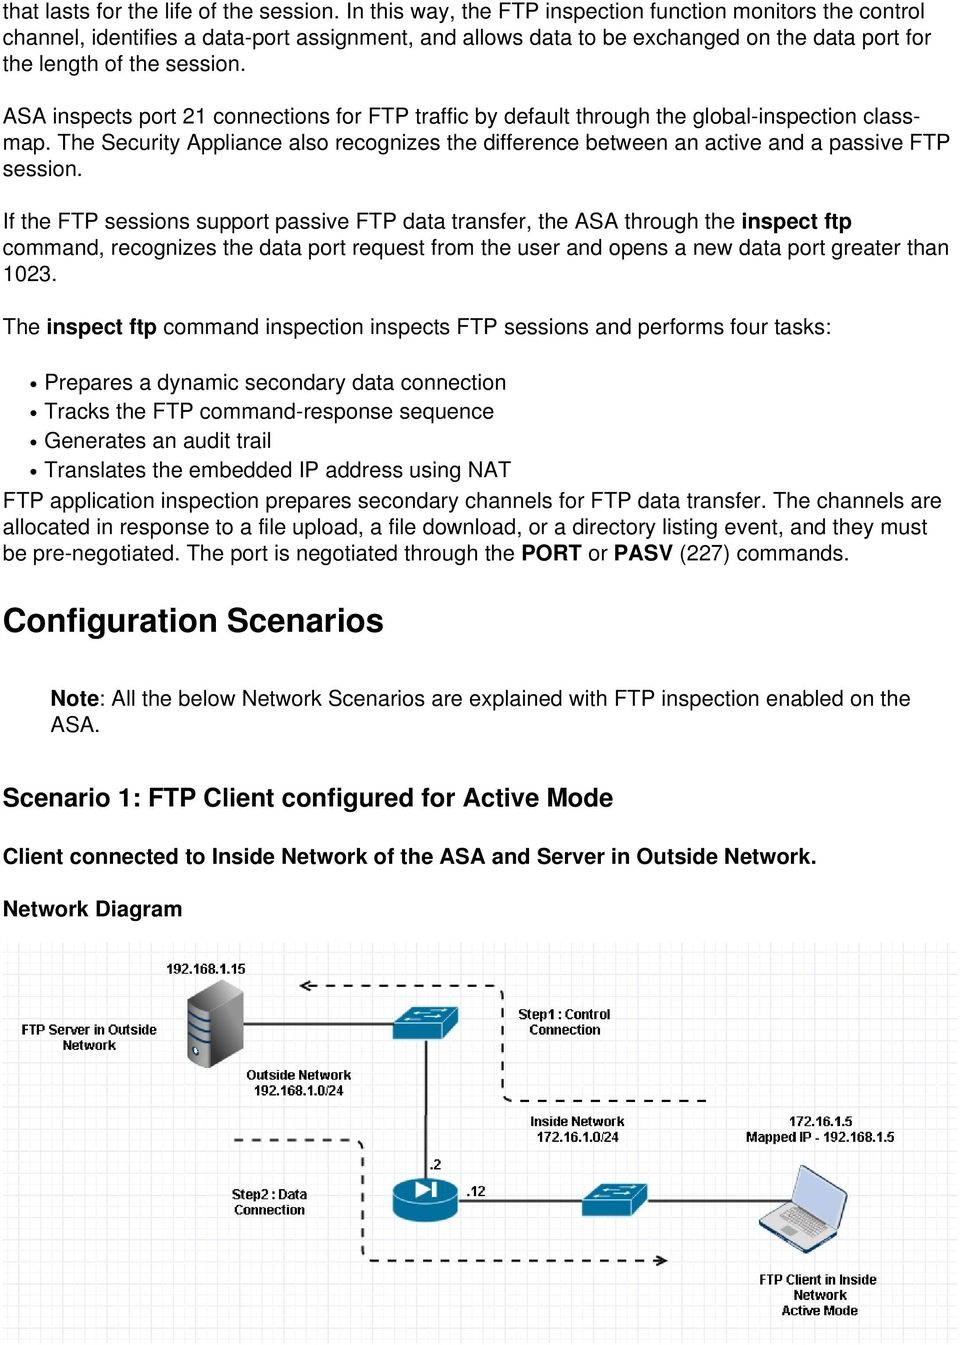 ASA inspects port 21 connections for FTP traffic by default through the global-inspection classmap. The Security Appliance also recognizes the difference between an active and a passive FTP session.